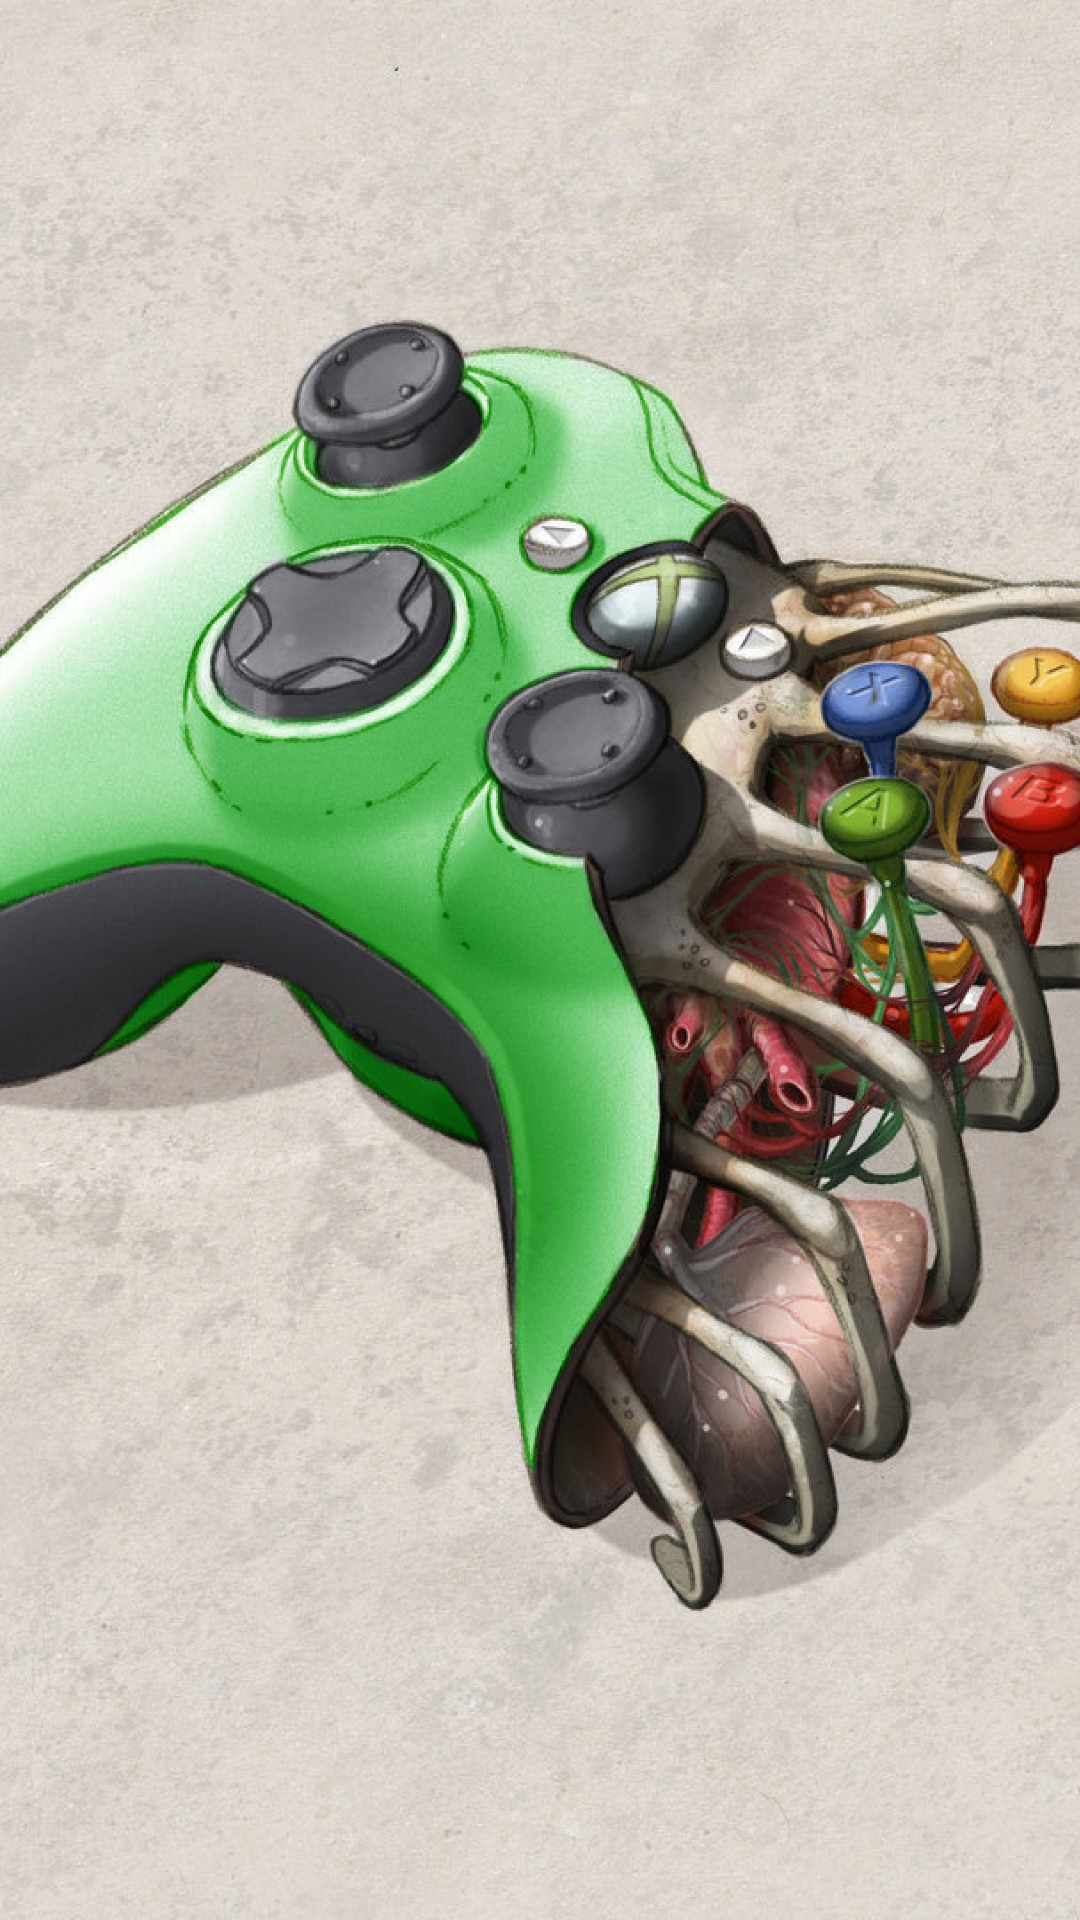 Xbox One Hd Wallpaper For Desktop And Mobiles Iphone 6 6s Plus